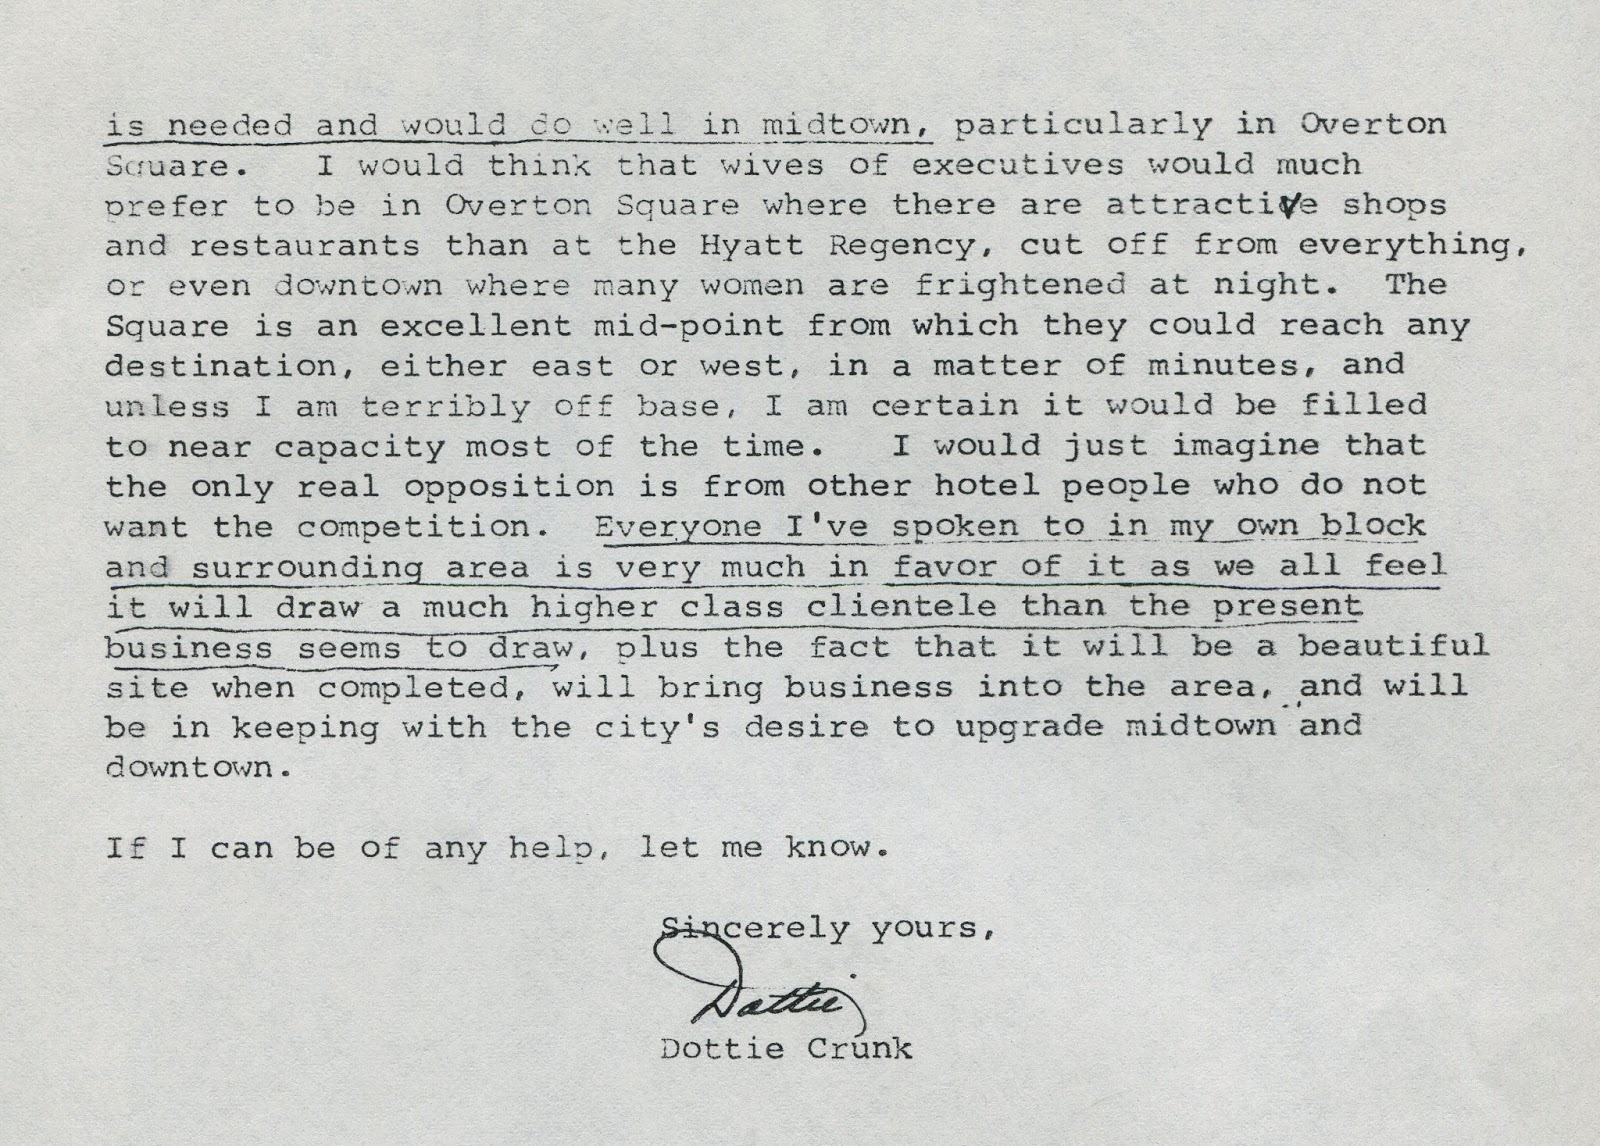 Crme de memph may 2014 letter from ms crunk in support of the proposed hotel spiritdancerdesigns Image collections